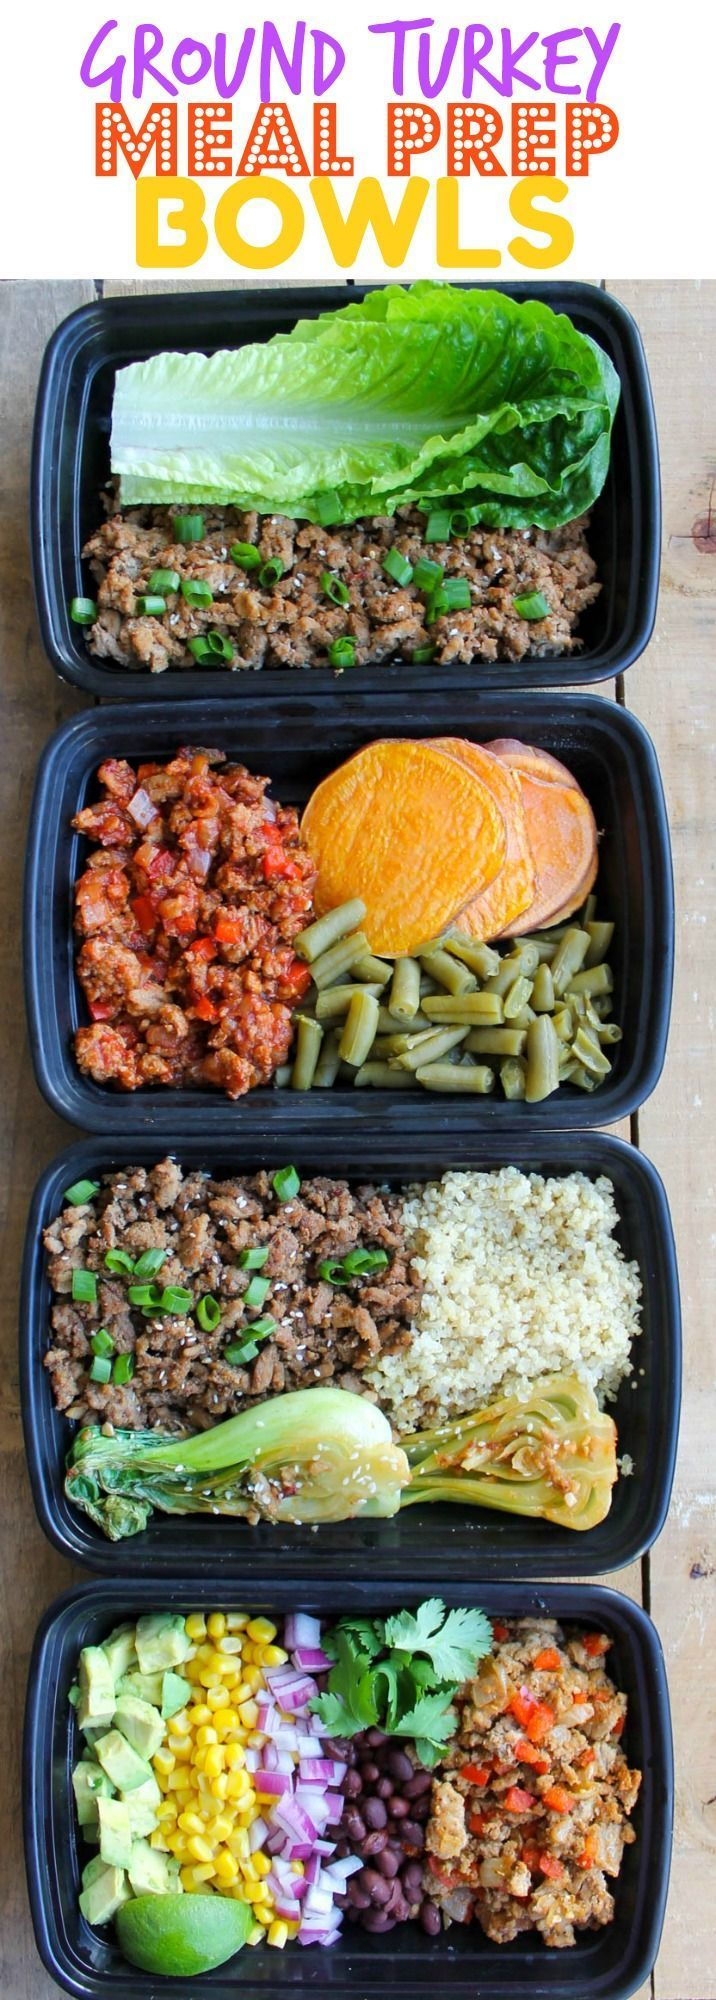 Easy Ground Turkey Meal Prep Bowls 4 Ways  Smile Sandwich  Easy Ground Turkey Meal Prep Bowls 4 Ways  these healthy meal prep recipes come together so qui